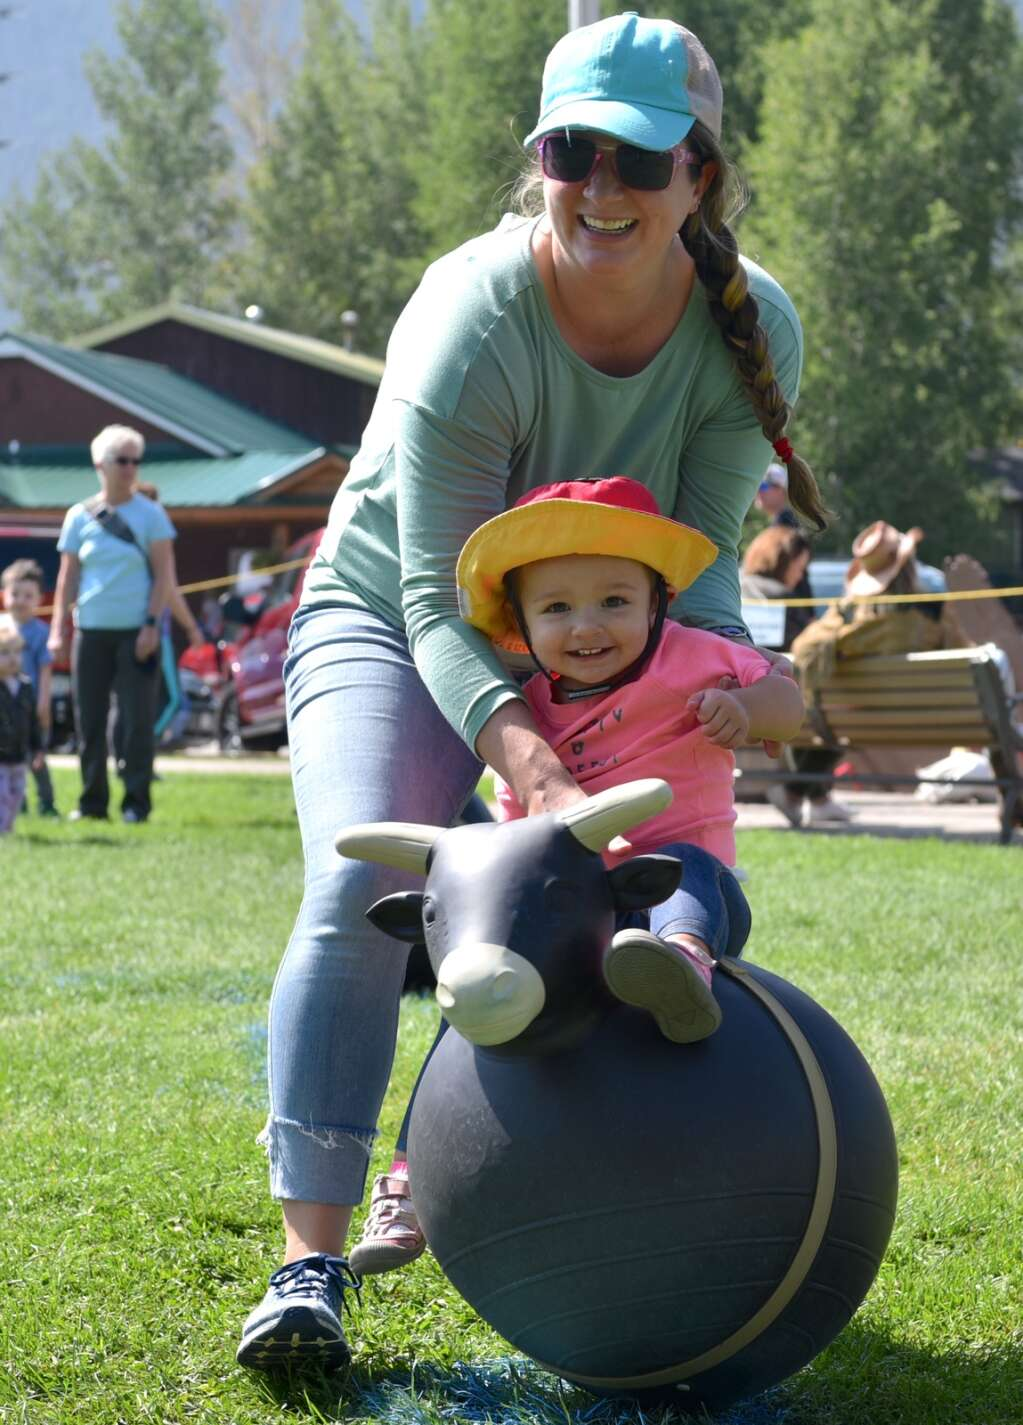 A mom helps her daughter ride a bull as part of festivities for Buffalo Days on Saturday in Grand Lake.   Amy Golden / agolden@skyhinews.com